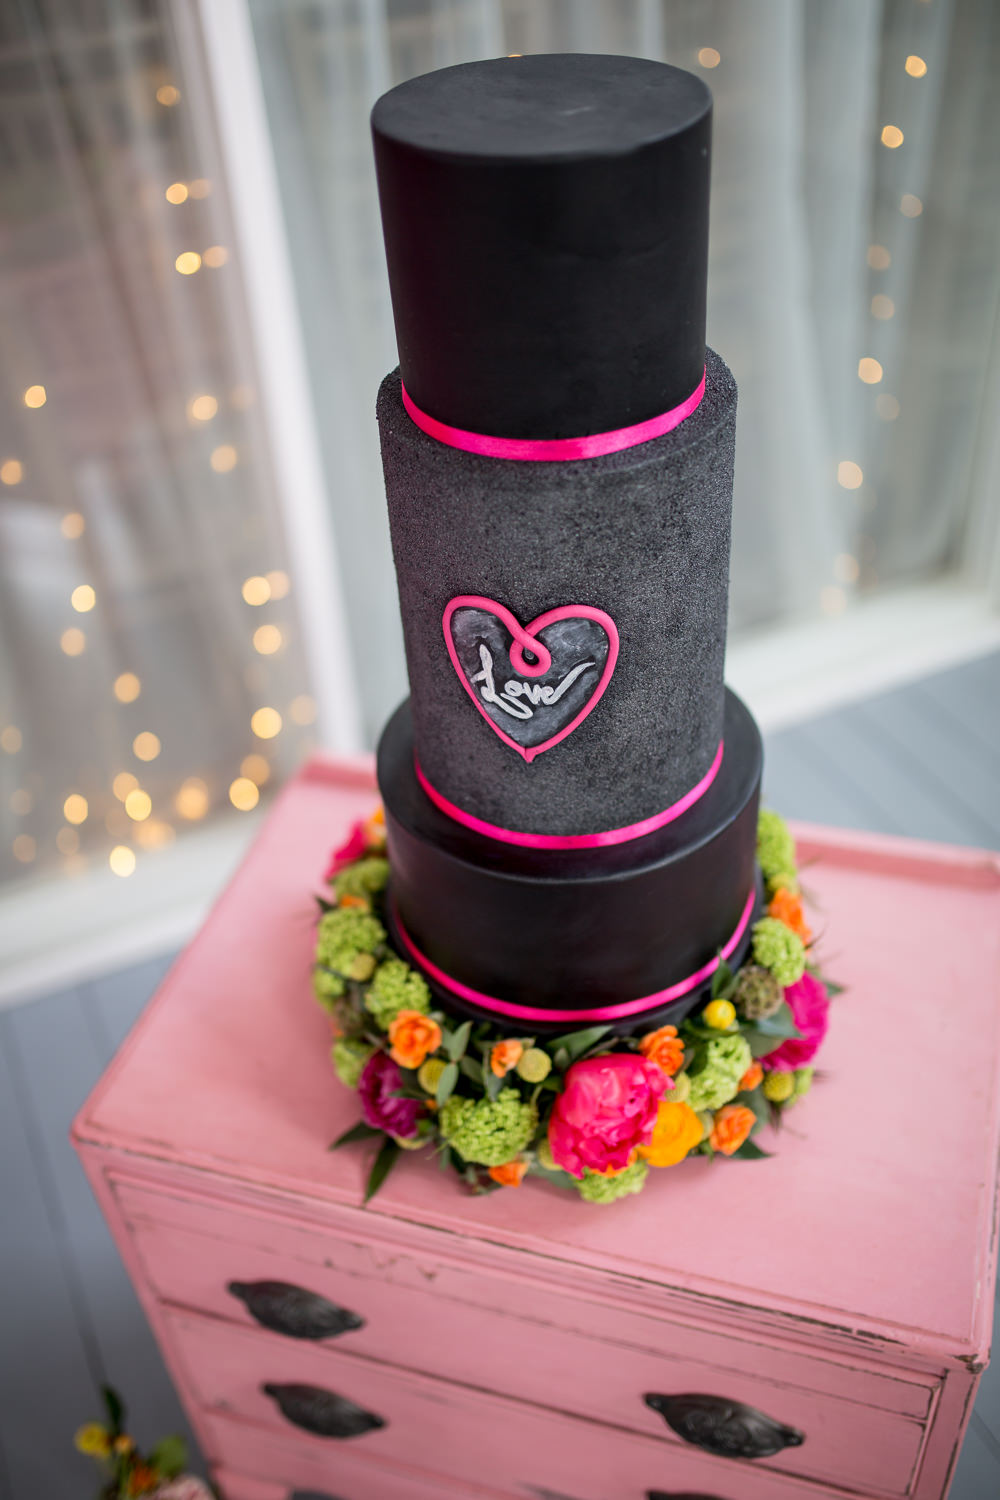 Cake Black Pink Chalk Flowers Vintage Dresser Drawers Colourful Balloons Wedding Ideas Florence Berry Photography